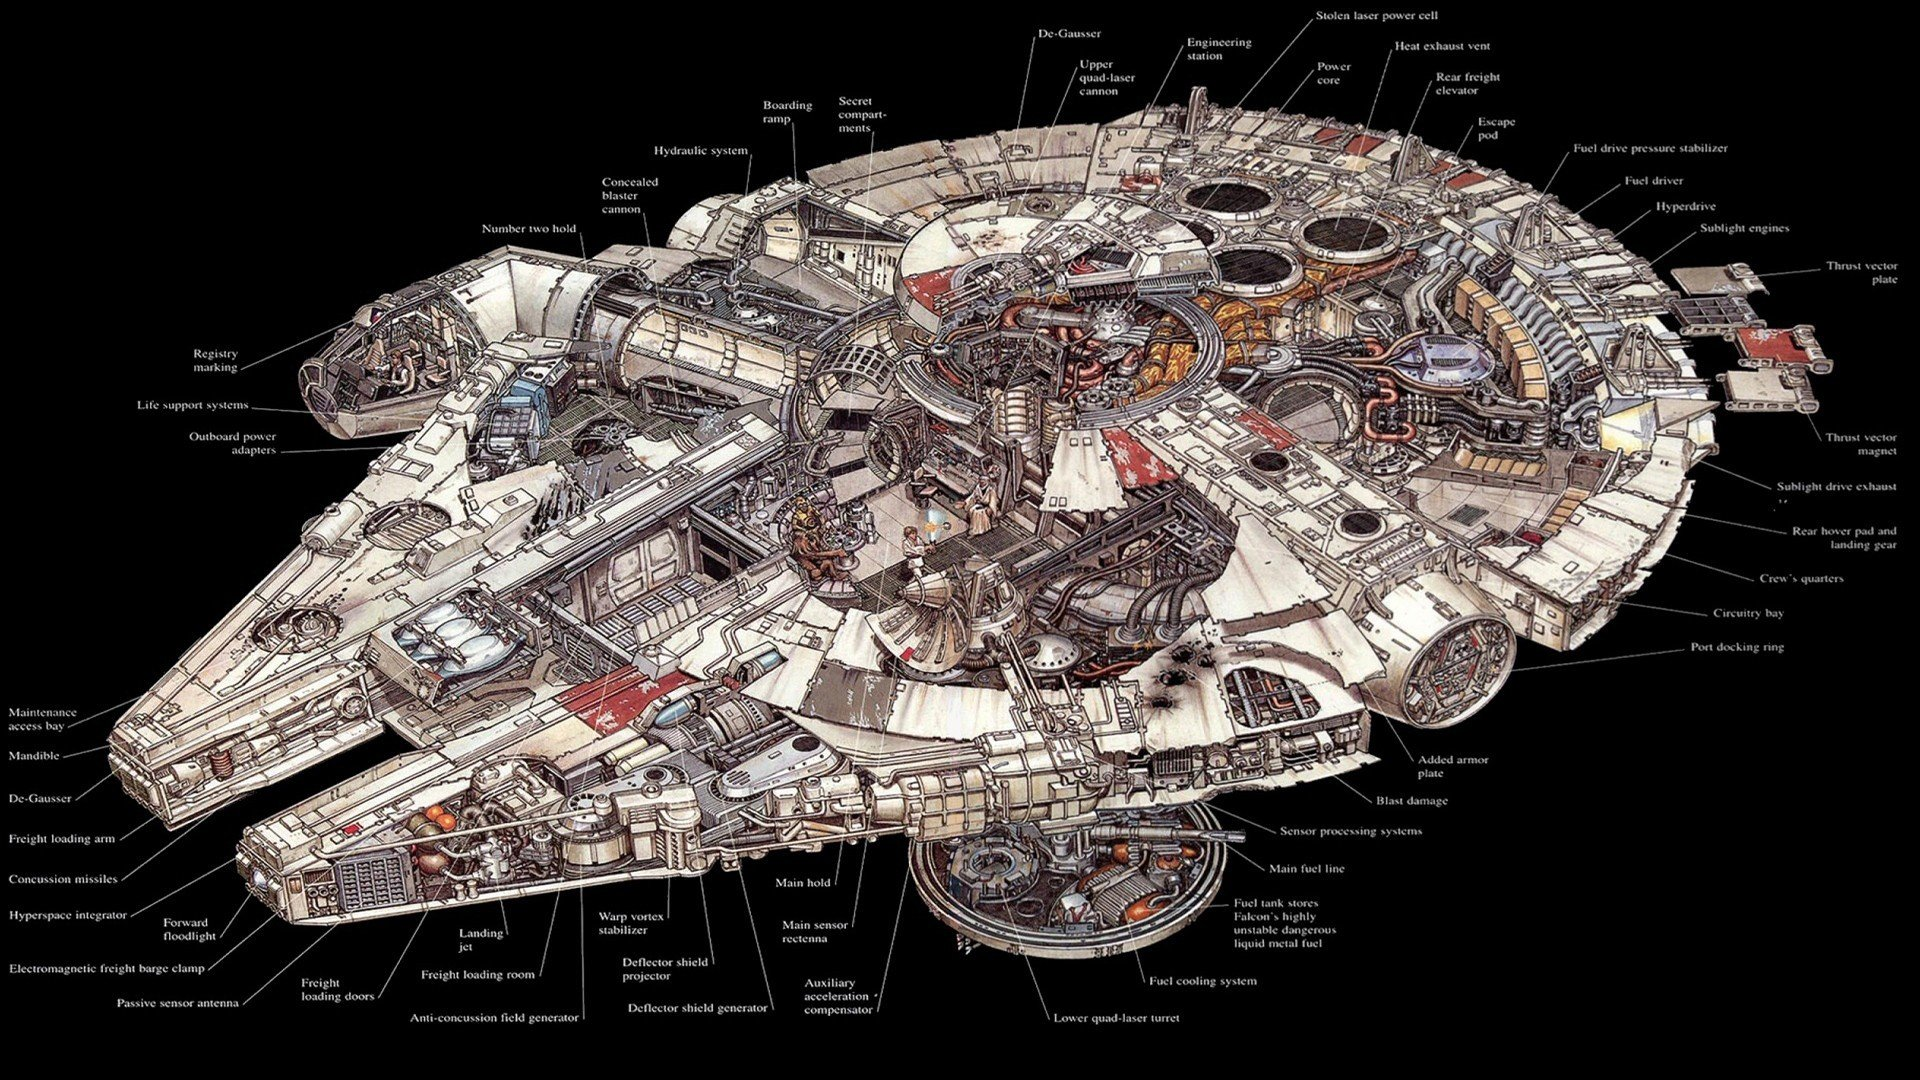 Star wars millennium falcon wallpaper wallpapersafari for Interieur faucon millenium